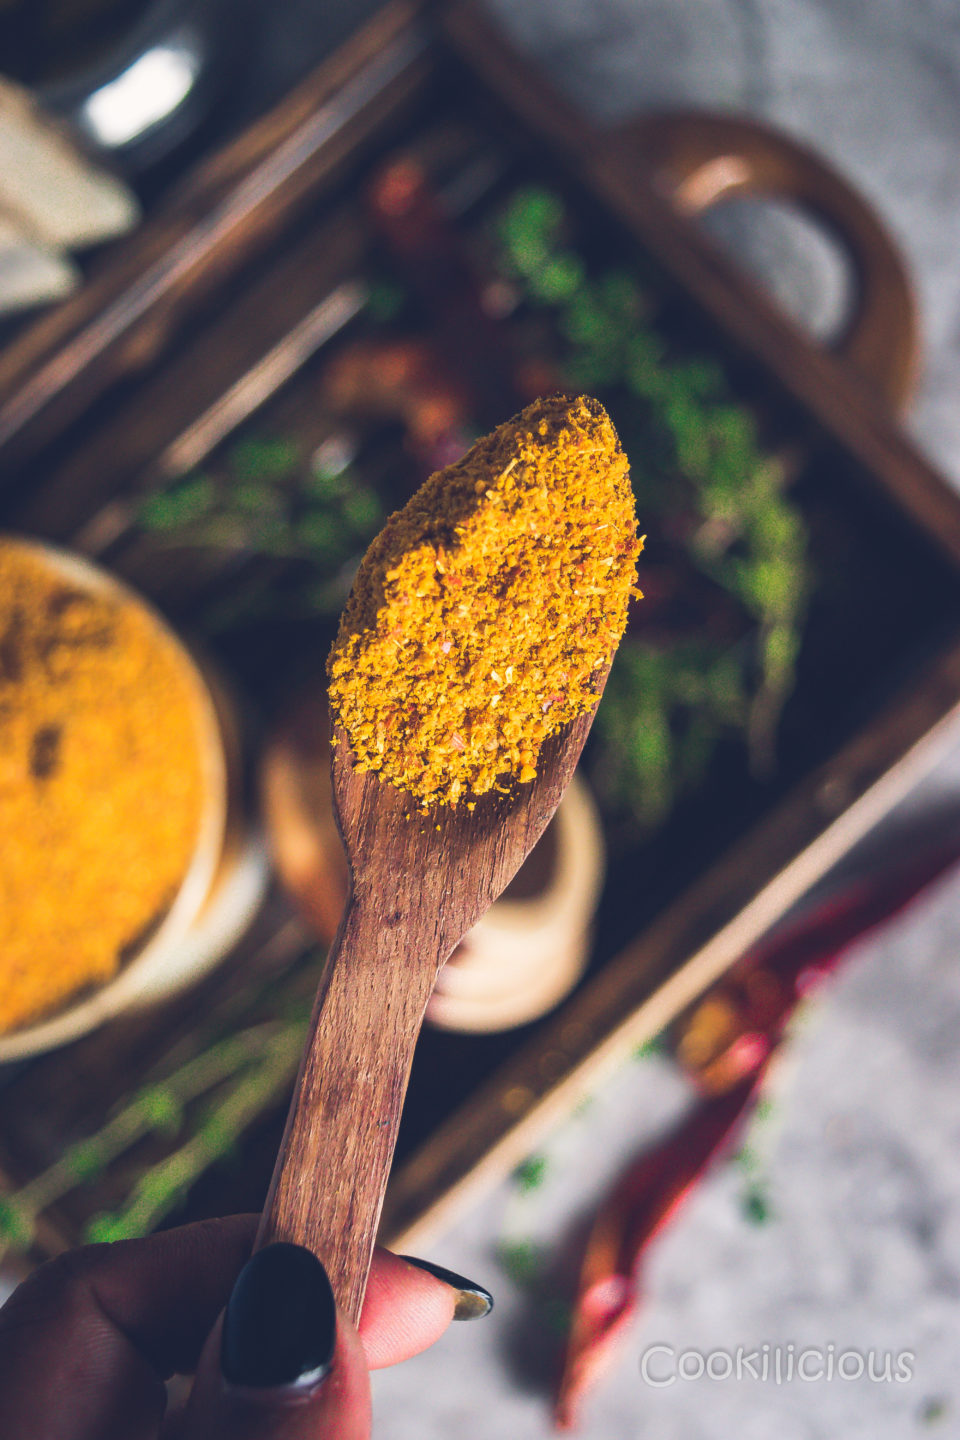 close up shot of a wooden spoon filled with sambhar powder